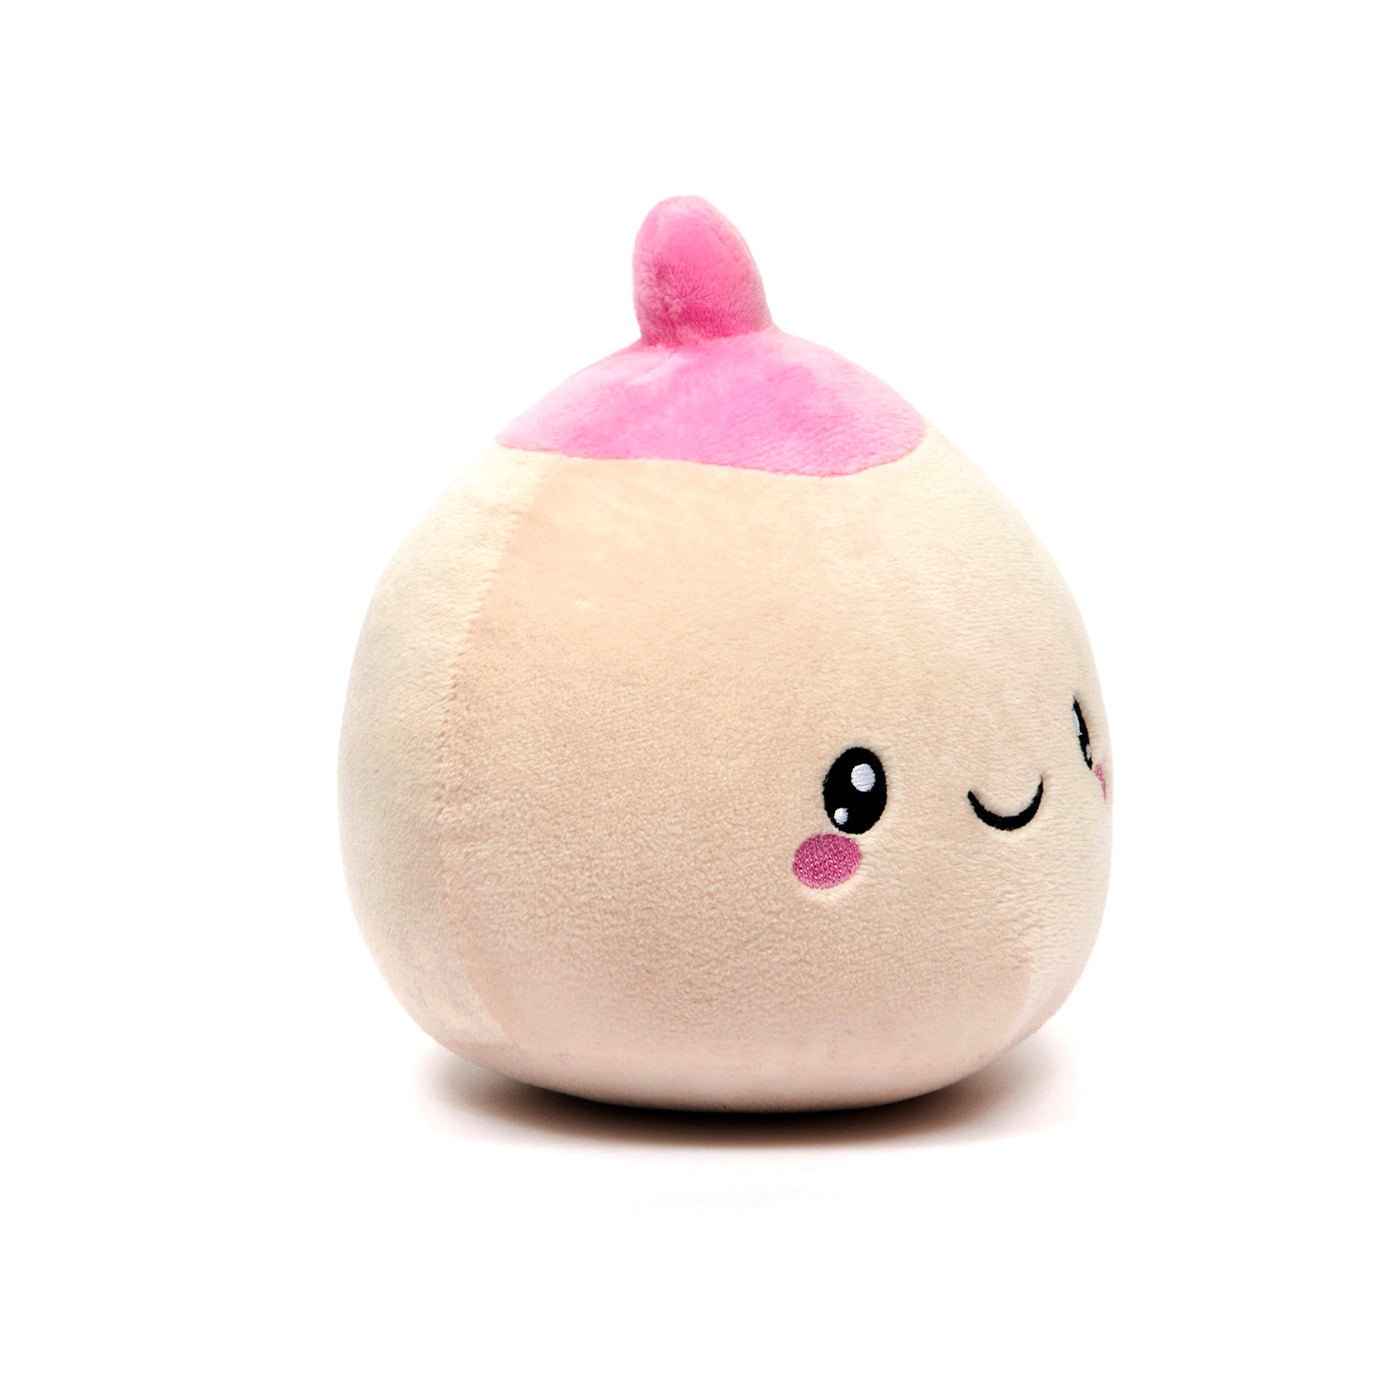 Nerdbugs Breast Plush - Breast is yet to come! (Ivory/Pink)